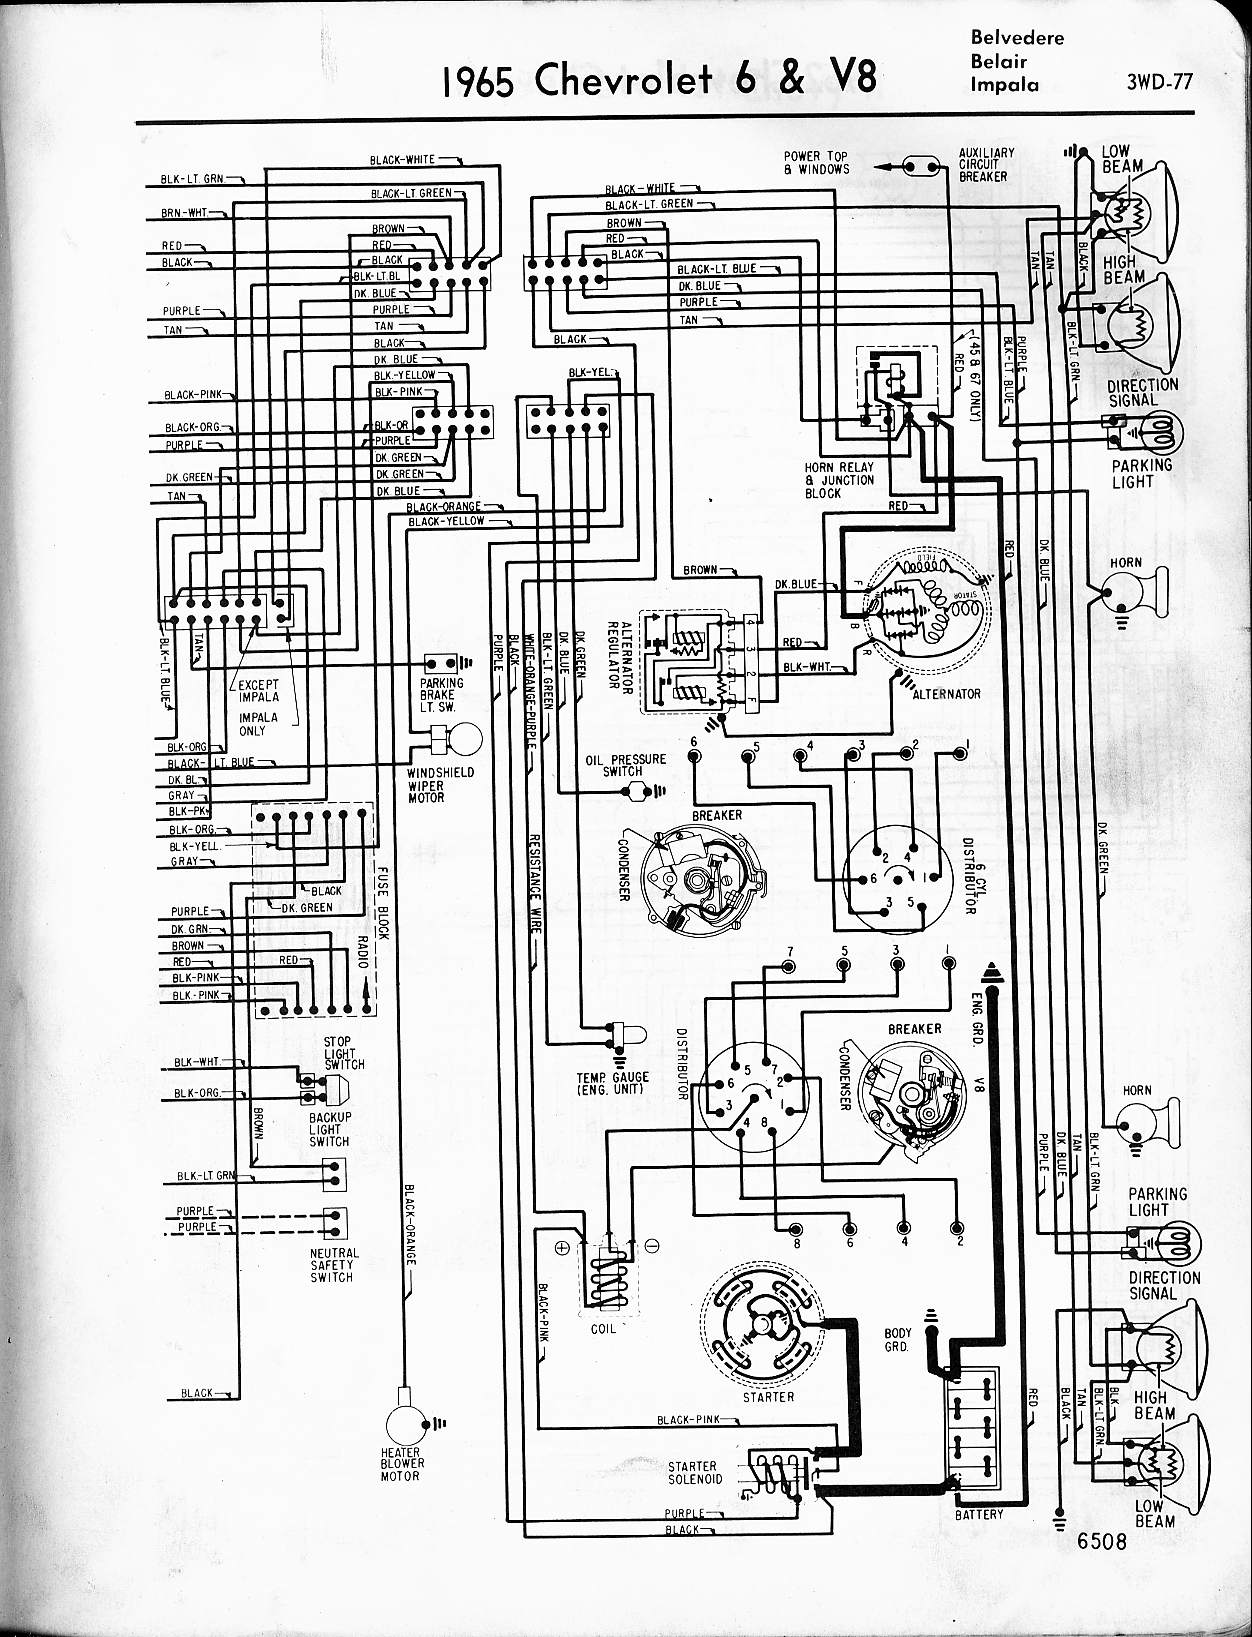 57 65 chevy wiring diagrams Wiring Diagram for 1967 Chevy Impala 1965 6 \u0026 v8 biscayne, bel air, impala